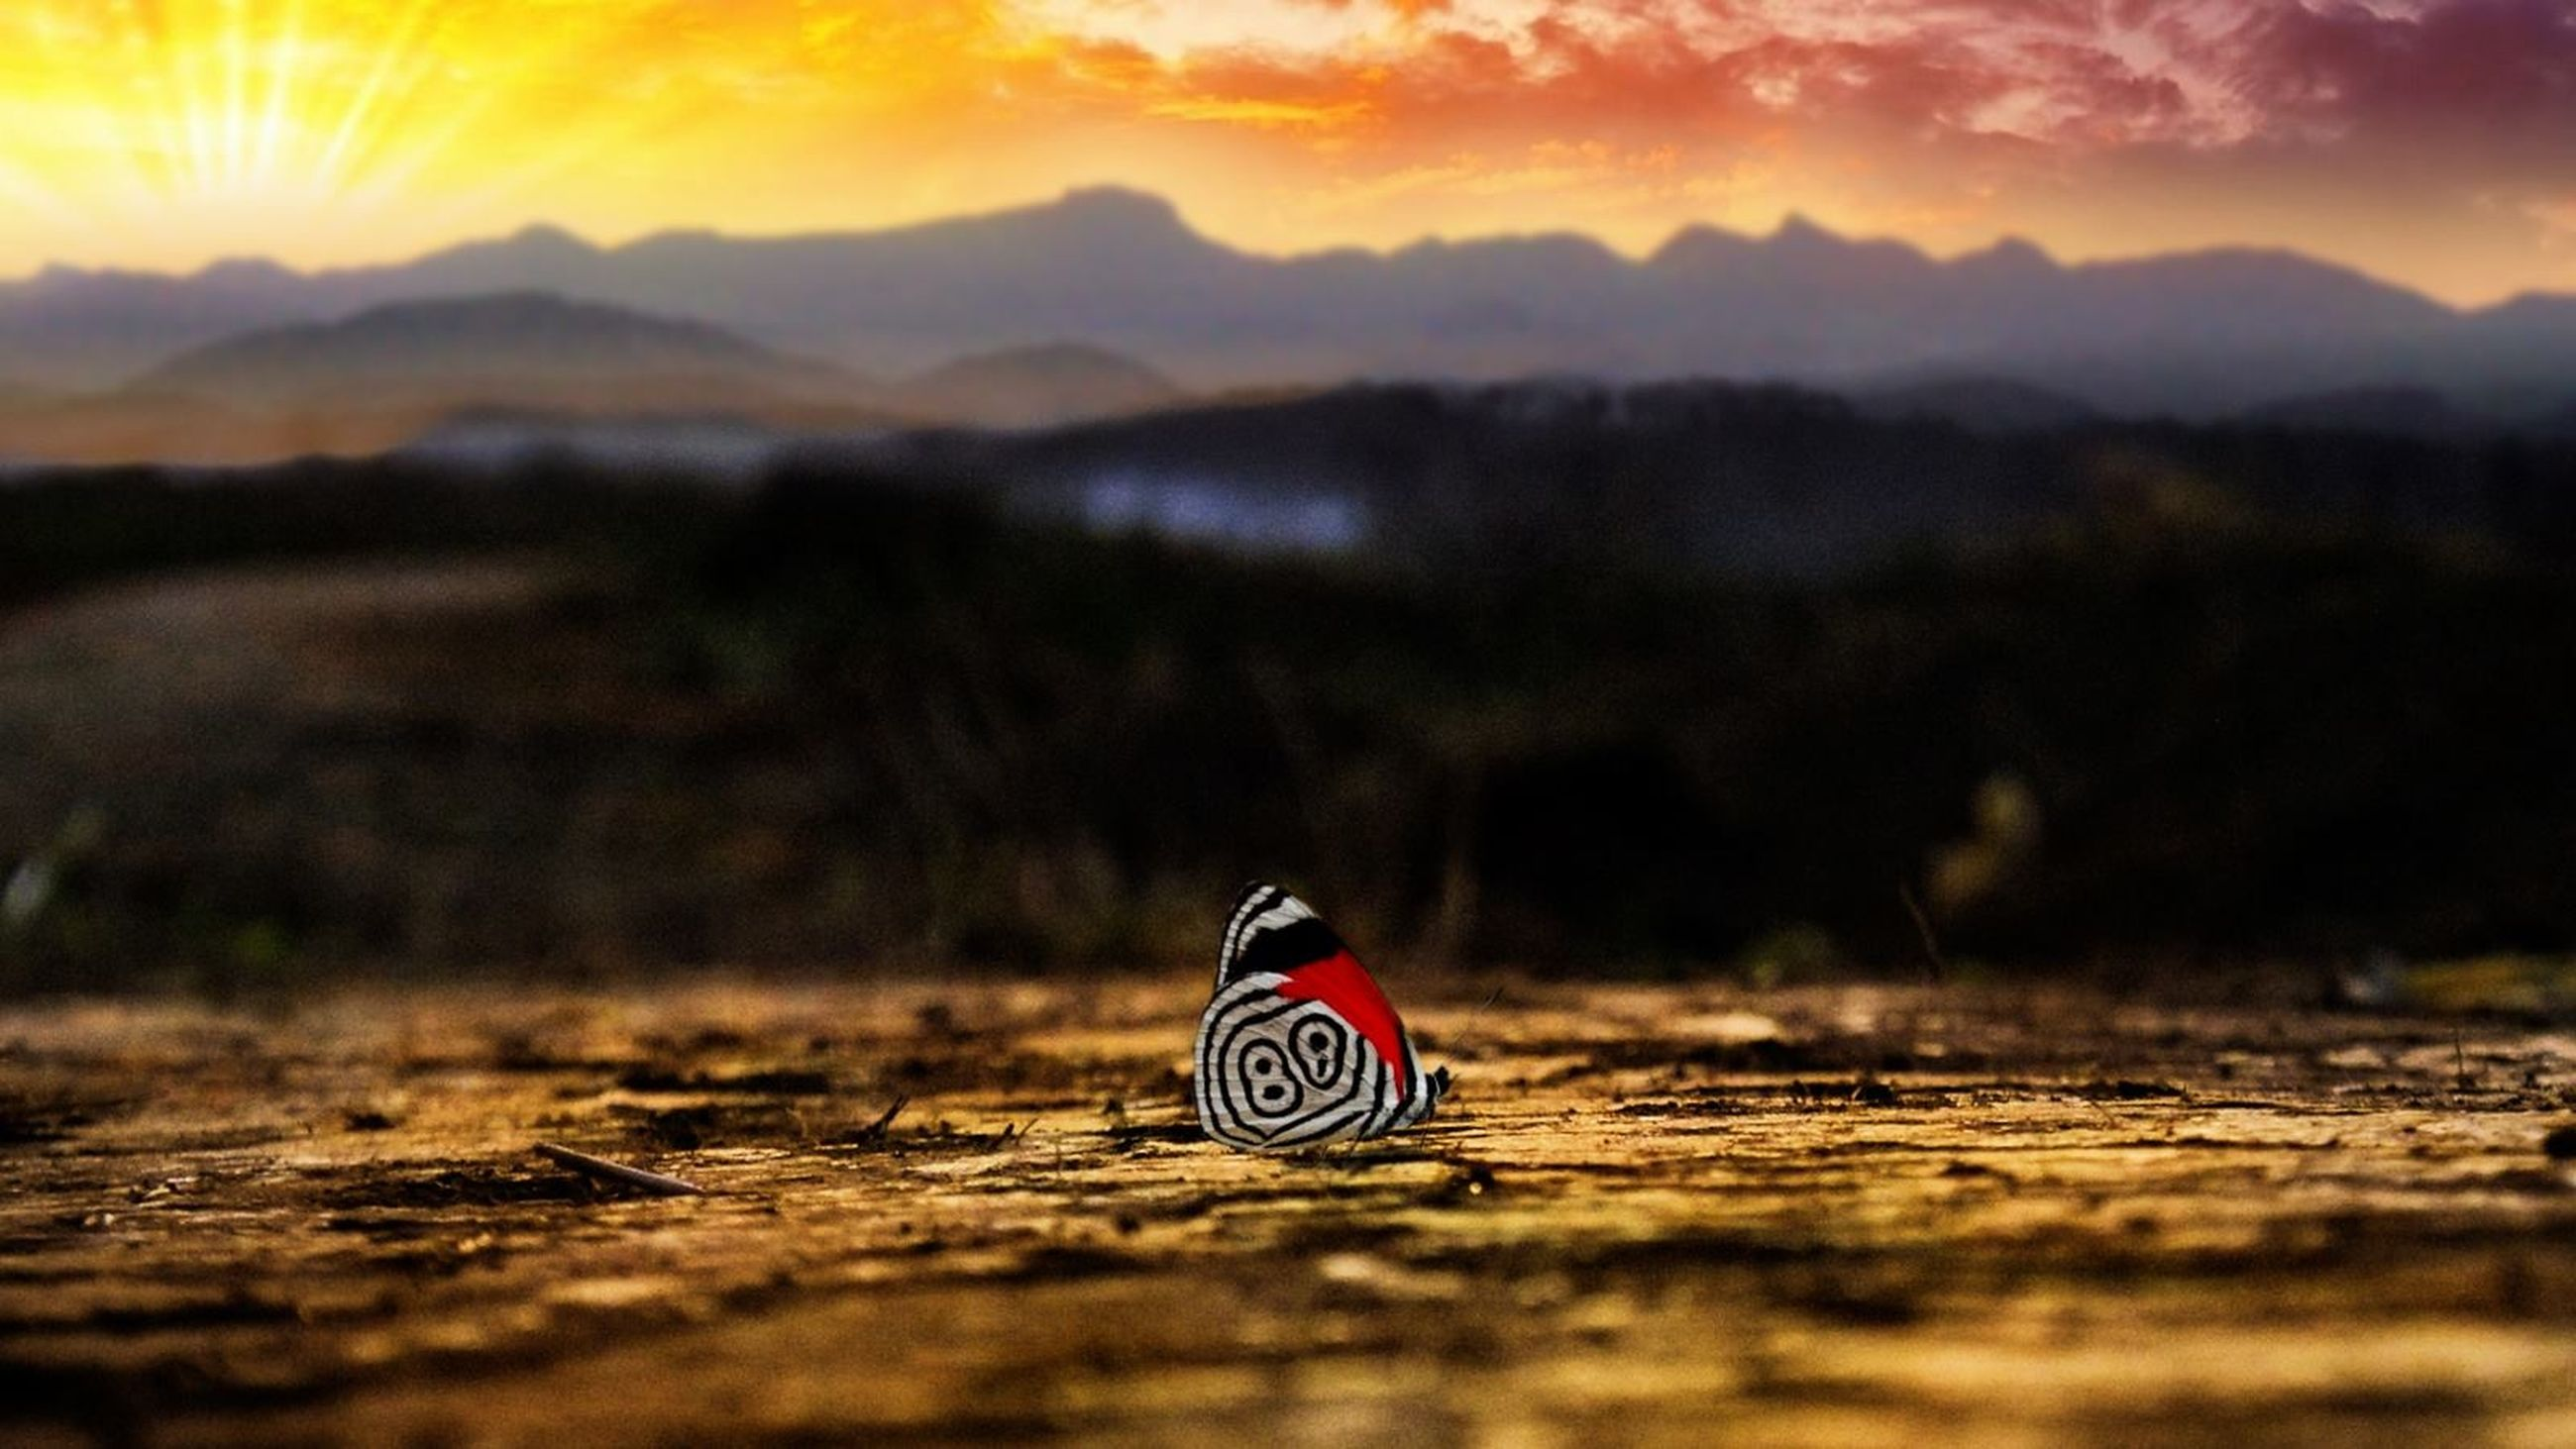 sunset, orange color, red, selective focus, sky, tranquility, mountain, landscape, focus on foreground, tranquil scene, nature, scenics, beauty in nature, outdoors, no people, surface level, close-up, communication, cloud - sky, non-urban scene